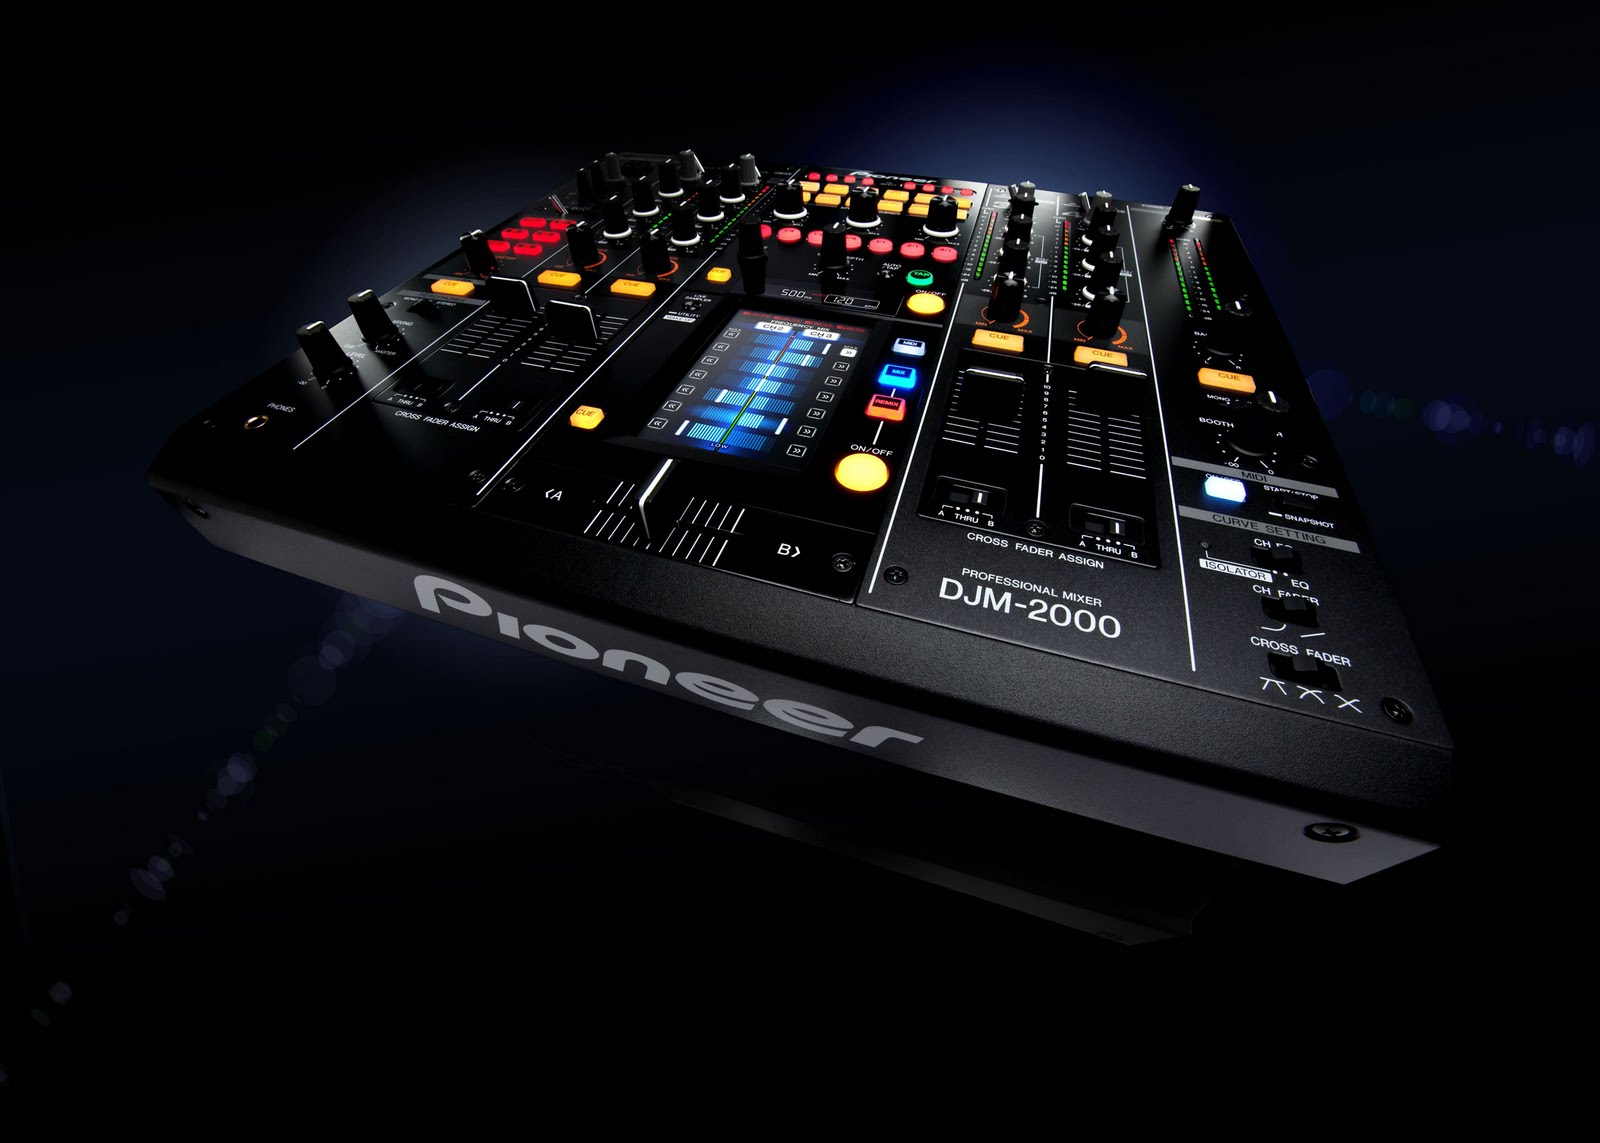 Proffesional DJ Equipment Review DJM 2000 Proffesional